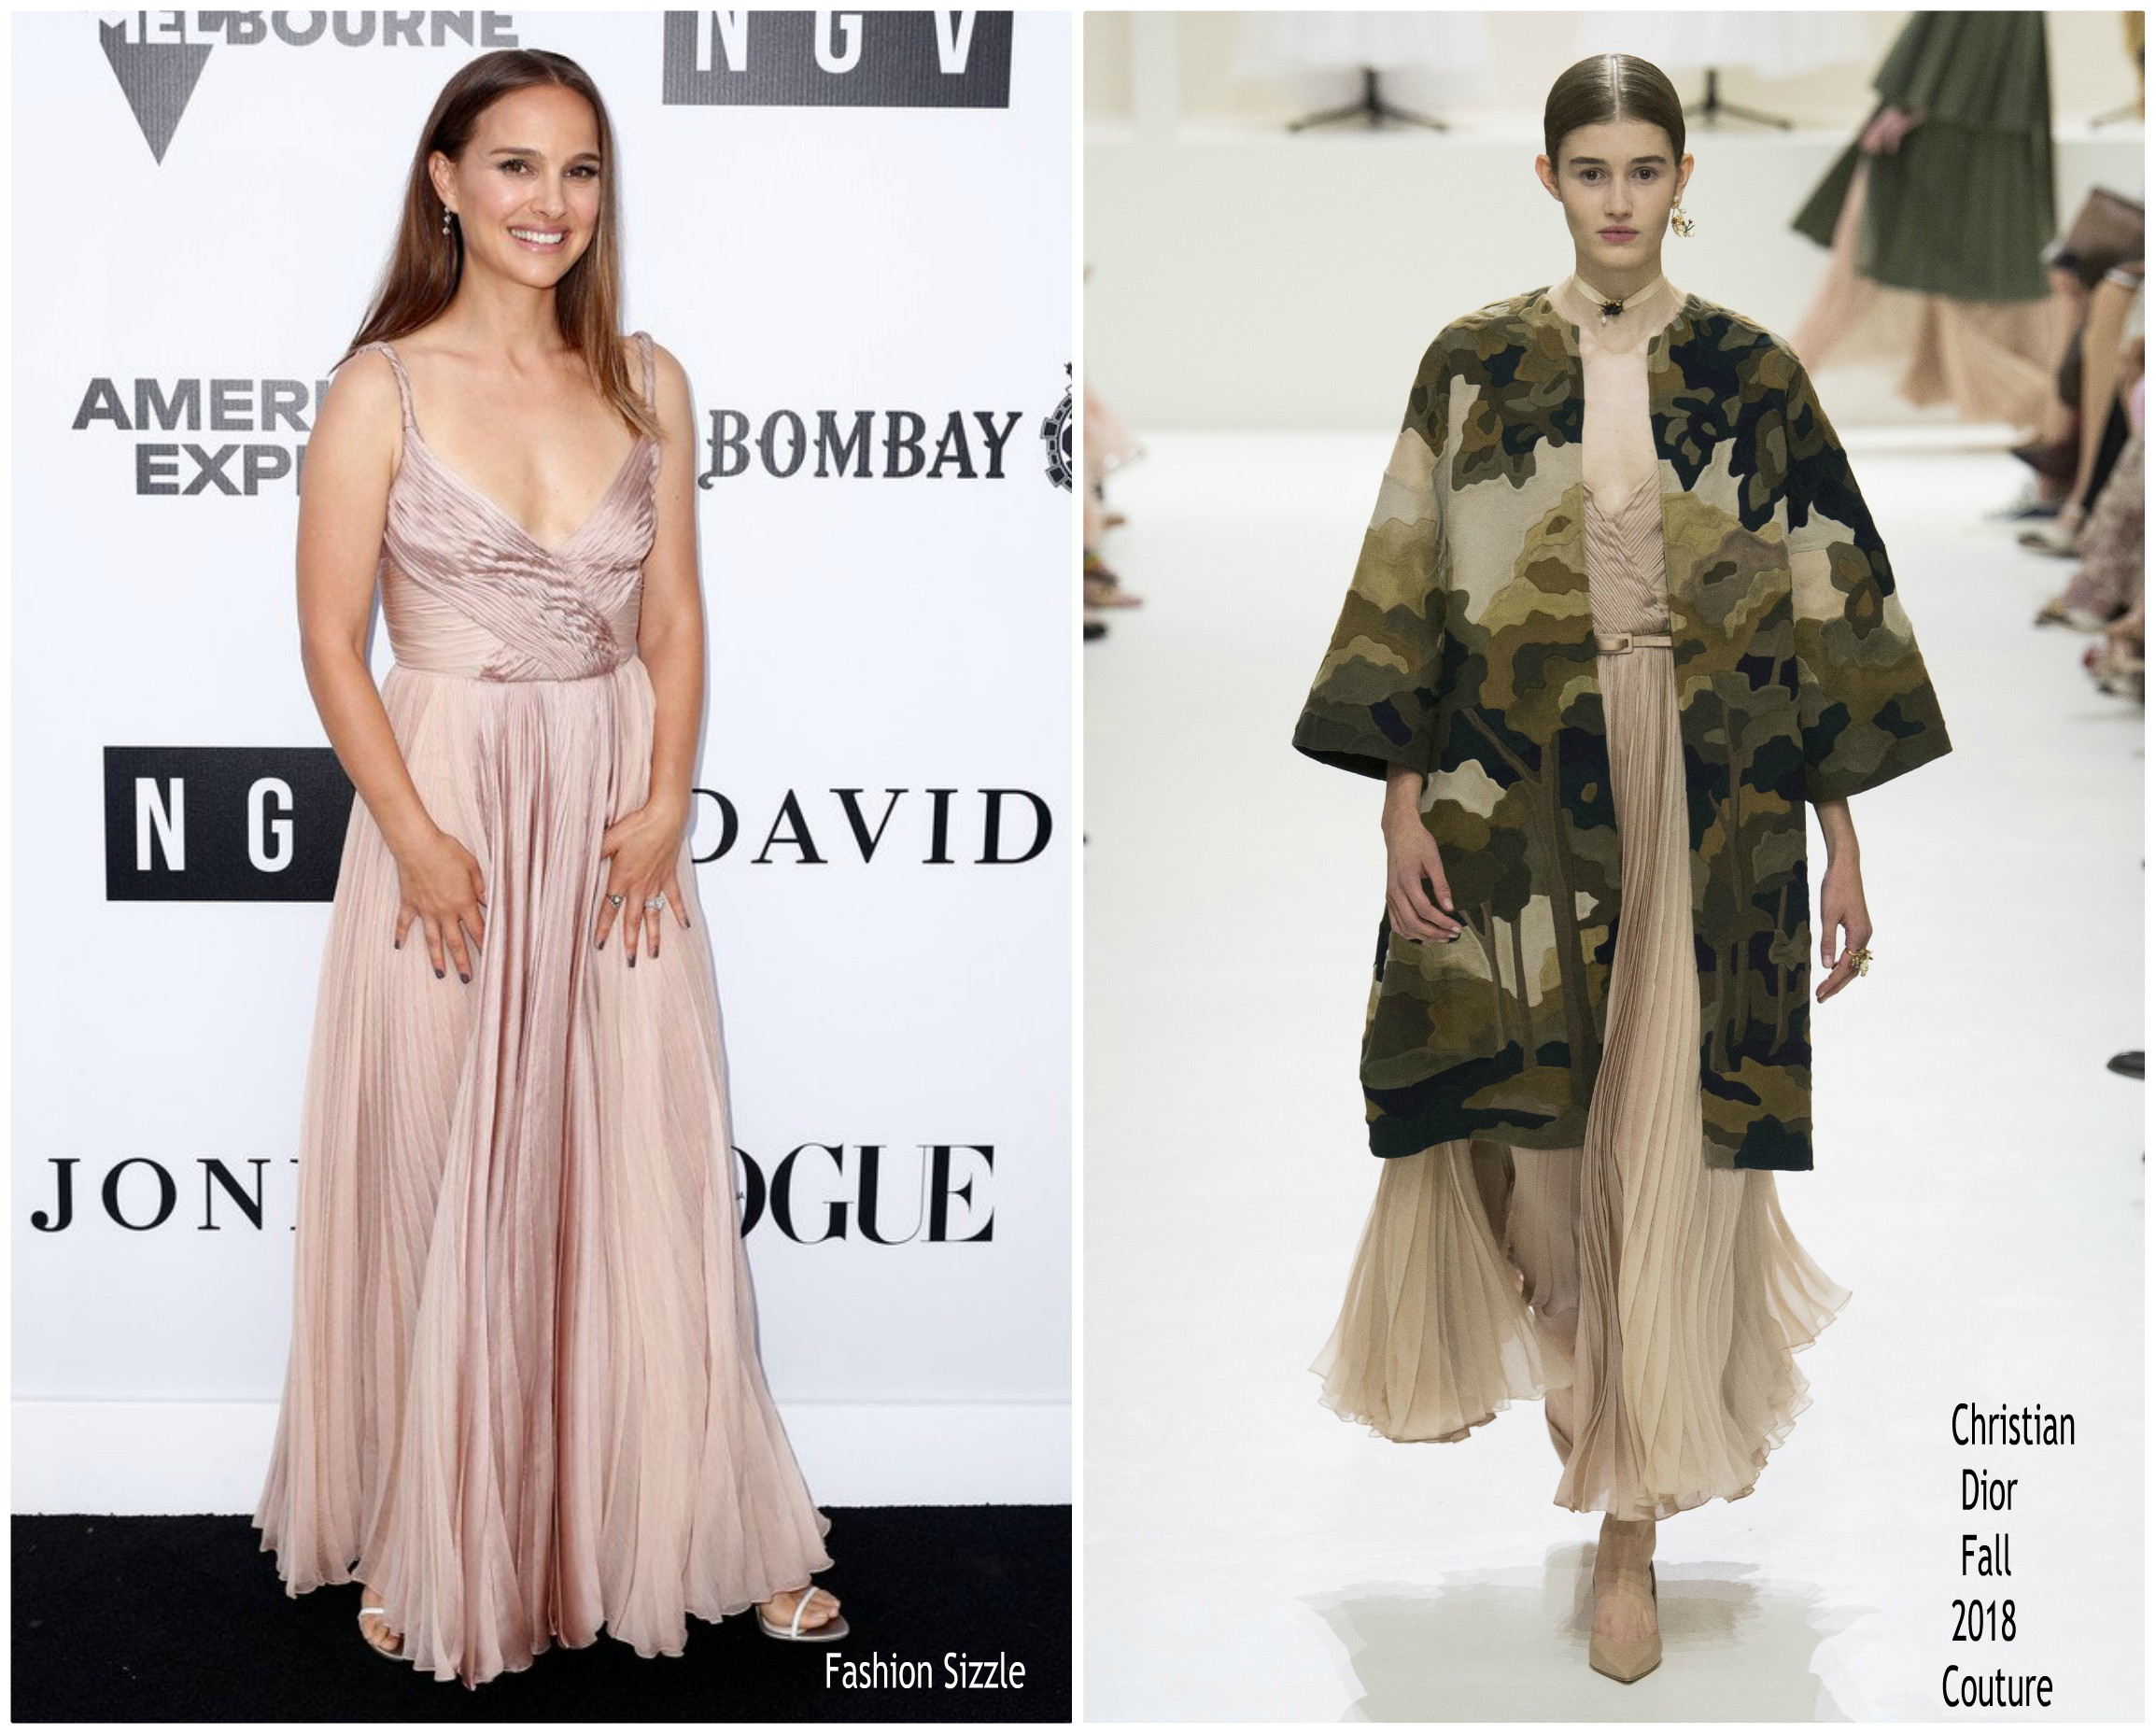 natalie-portman-in-christian-dior-haute-couture-2018-ngv-gala